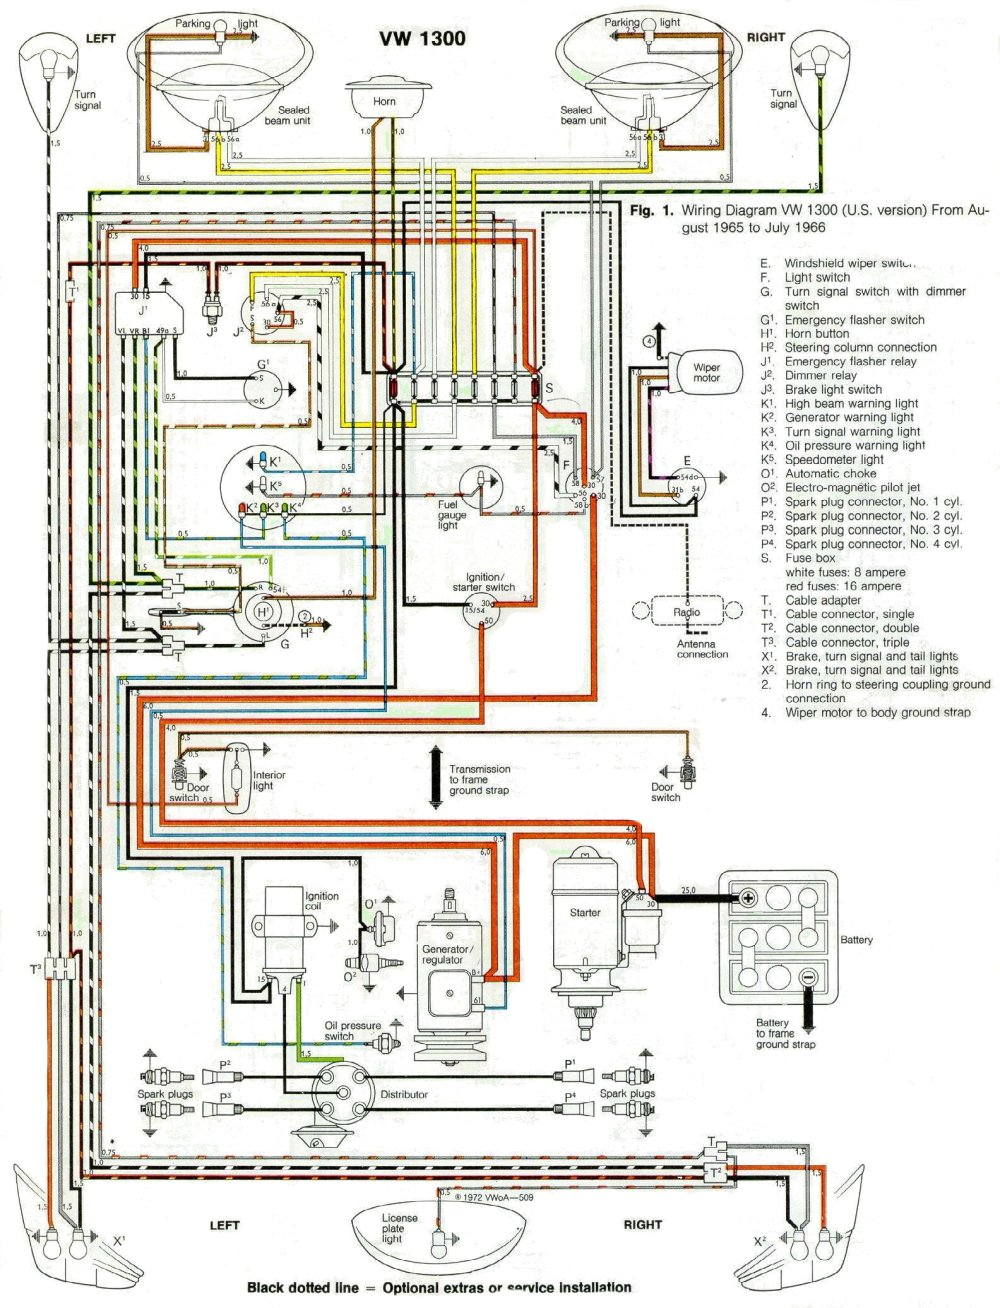 medium resolution of wrg 7679 2014 jetta coil wiring diagram 1966 wiring diagram vw bug coil wiring vw